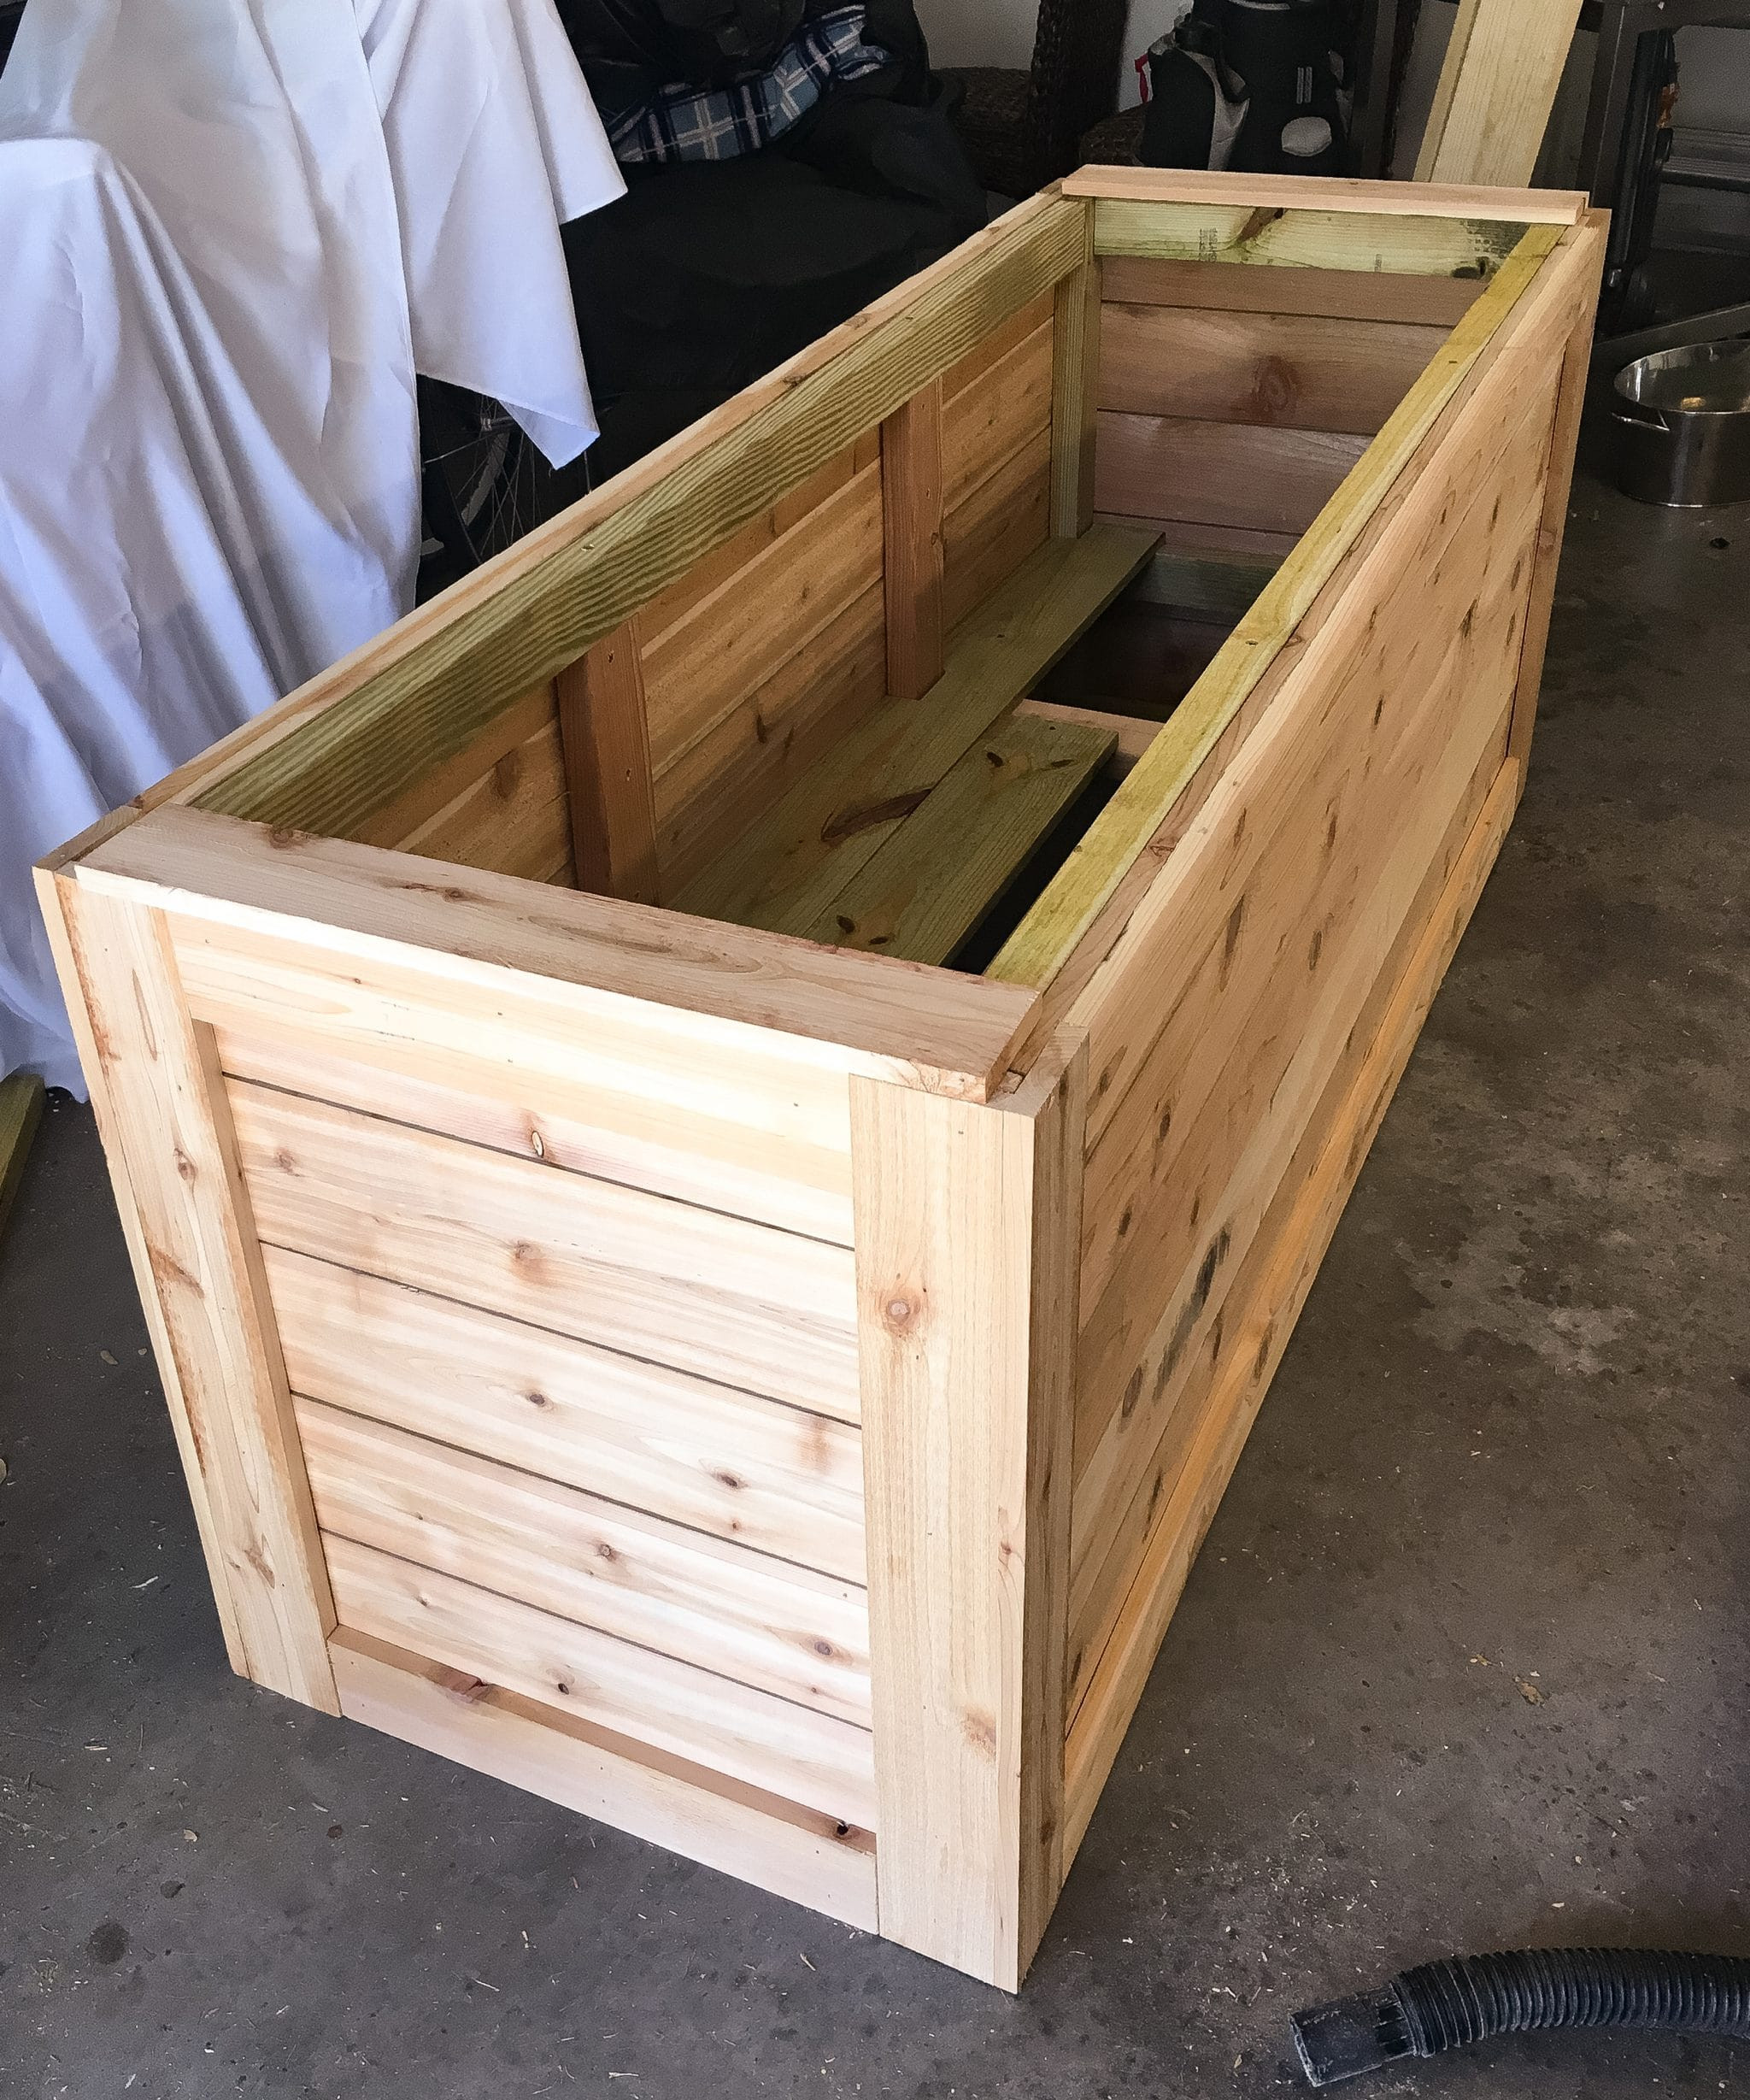 Best ideas about DIY Cedar Planter Box . Save or Pin BACKYARD DIY SERIES PART IIII Cedar Wood Planter Box Now.